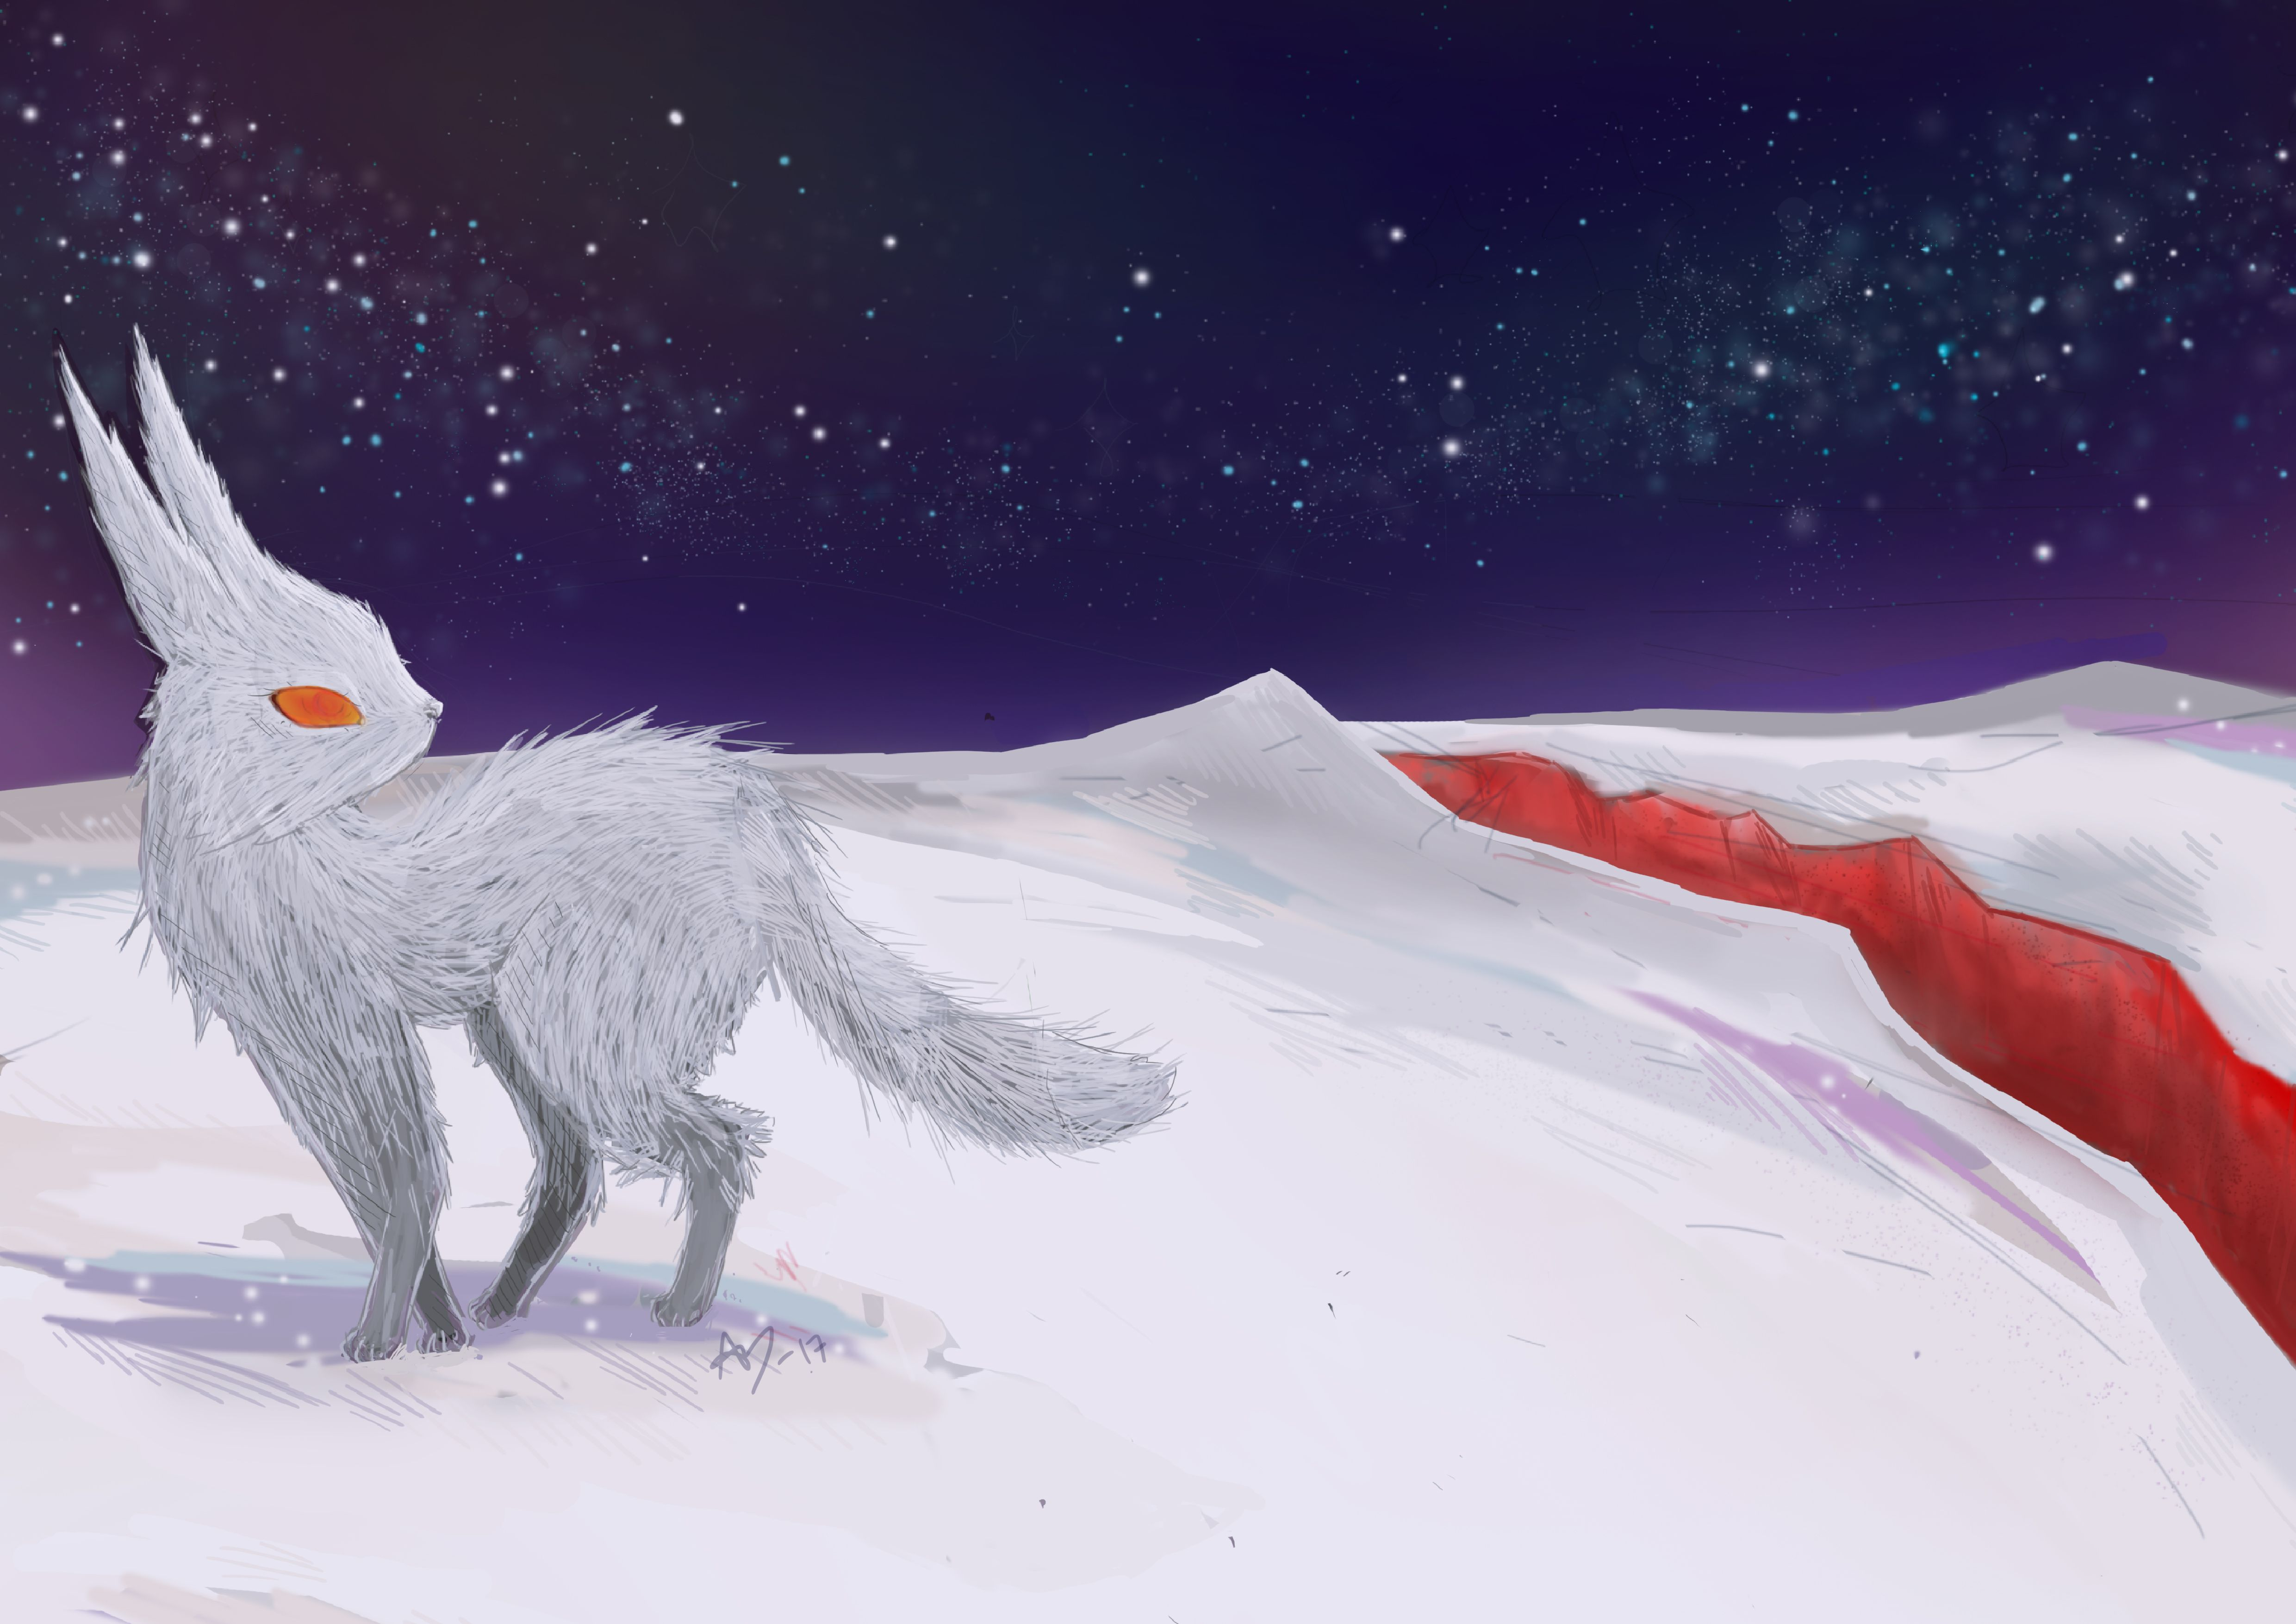 Fanart Of The Crystal Fox From Star Wars The Last Jedi Visit My Blog For More Art Cx Star Wars Villains Star Wars Fan Art Star Wars Facts